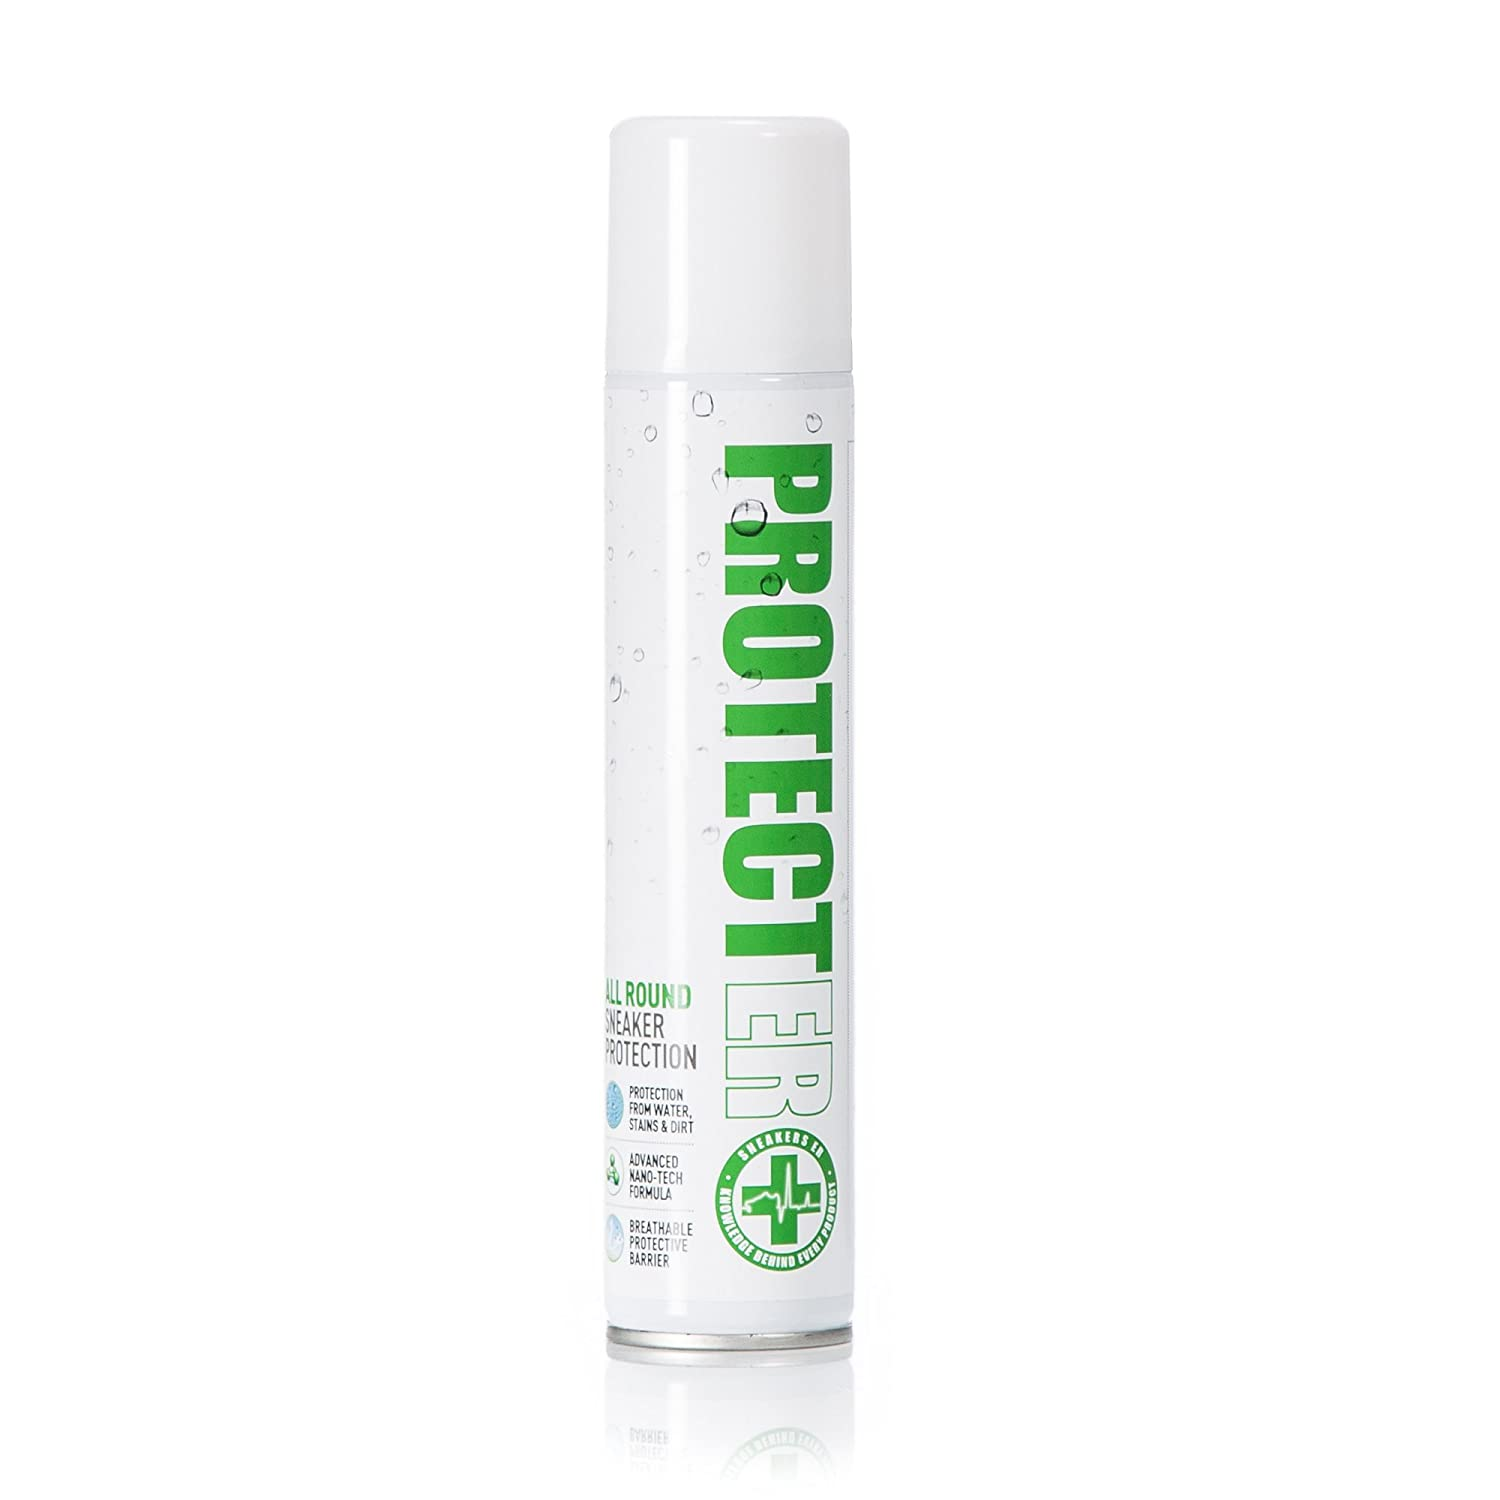 SNEAKERS ER PROTECTER Aerosol Nano Technology protection for sneakers shoes footwear …